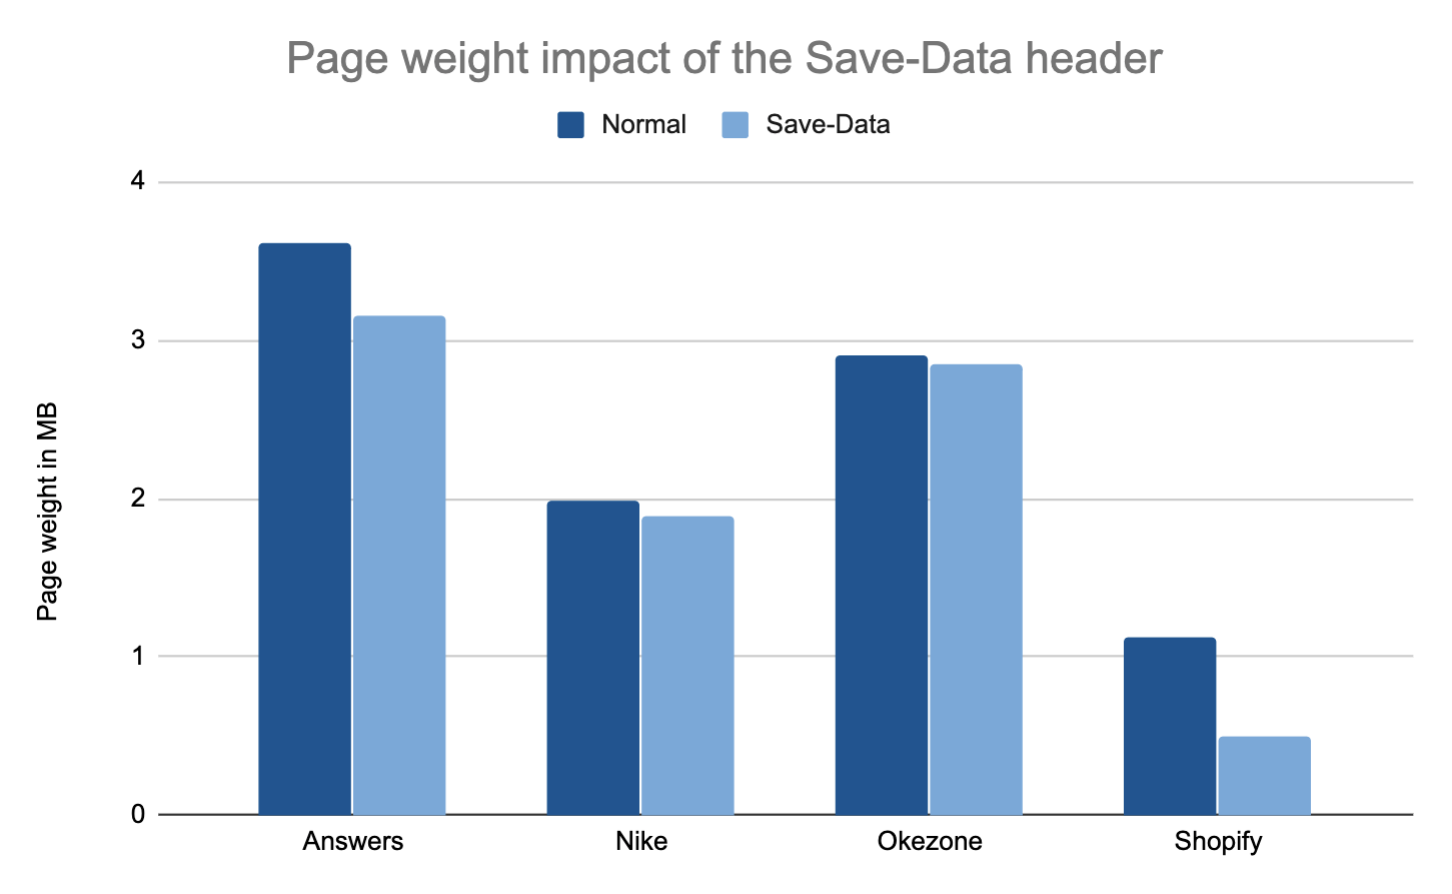 Page weight impact of Save-Data header